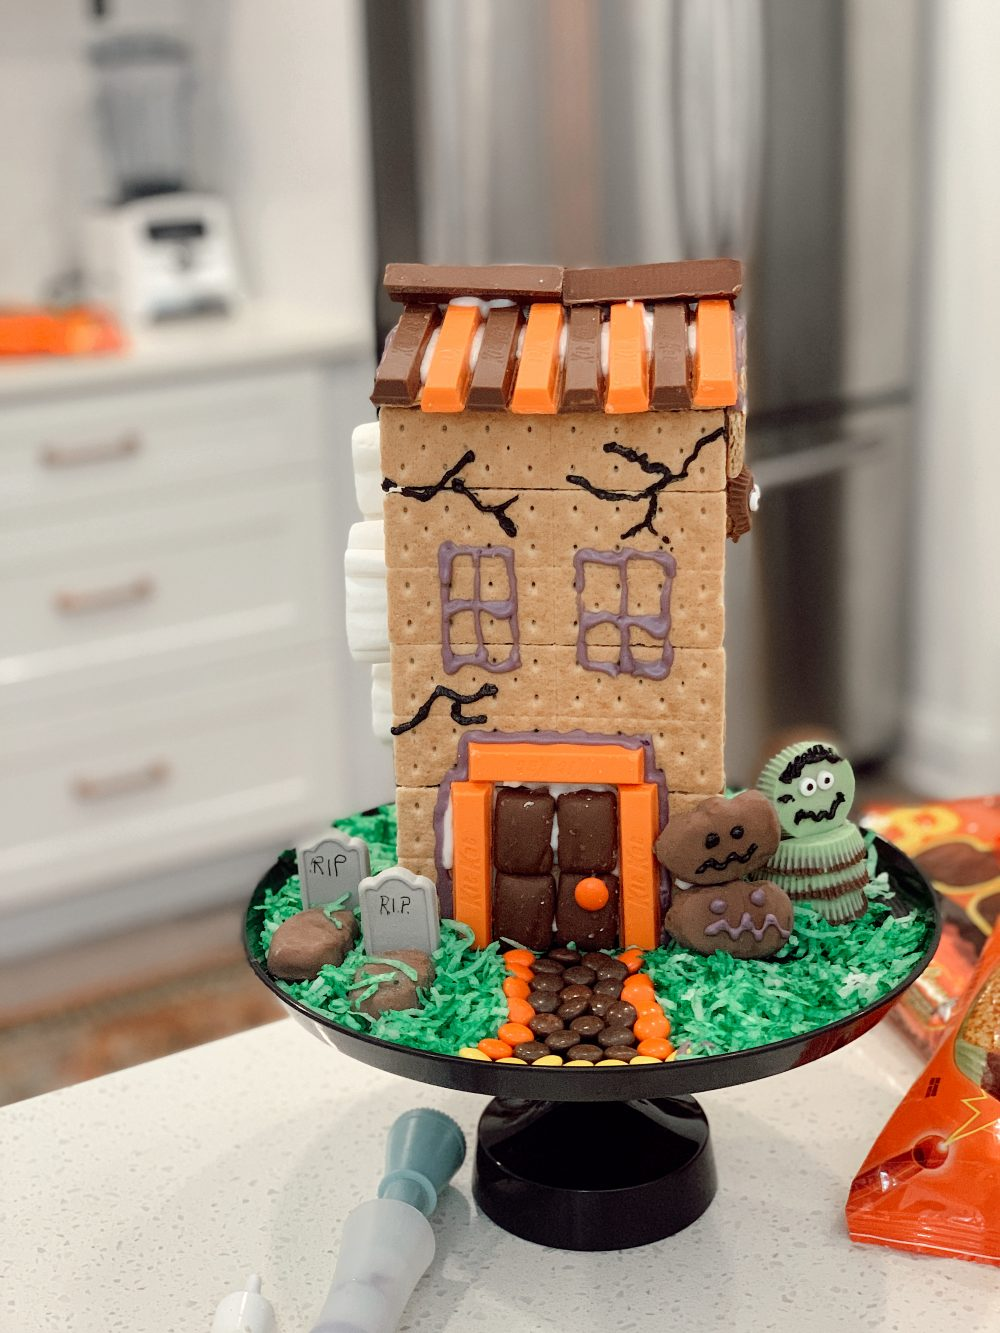 How to make easy, no-bake Haunted Halloween Candy Gingerbread House with Graham Crackers for a Spooktacular Halloween!